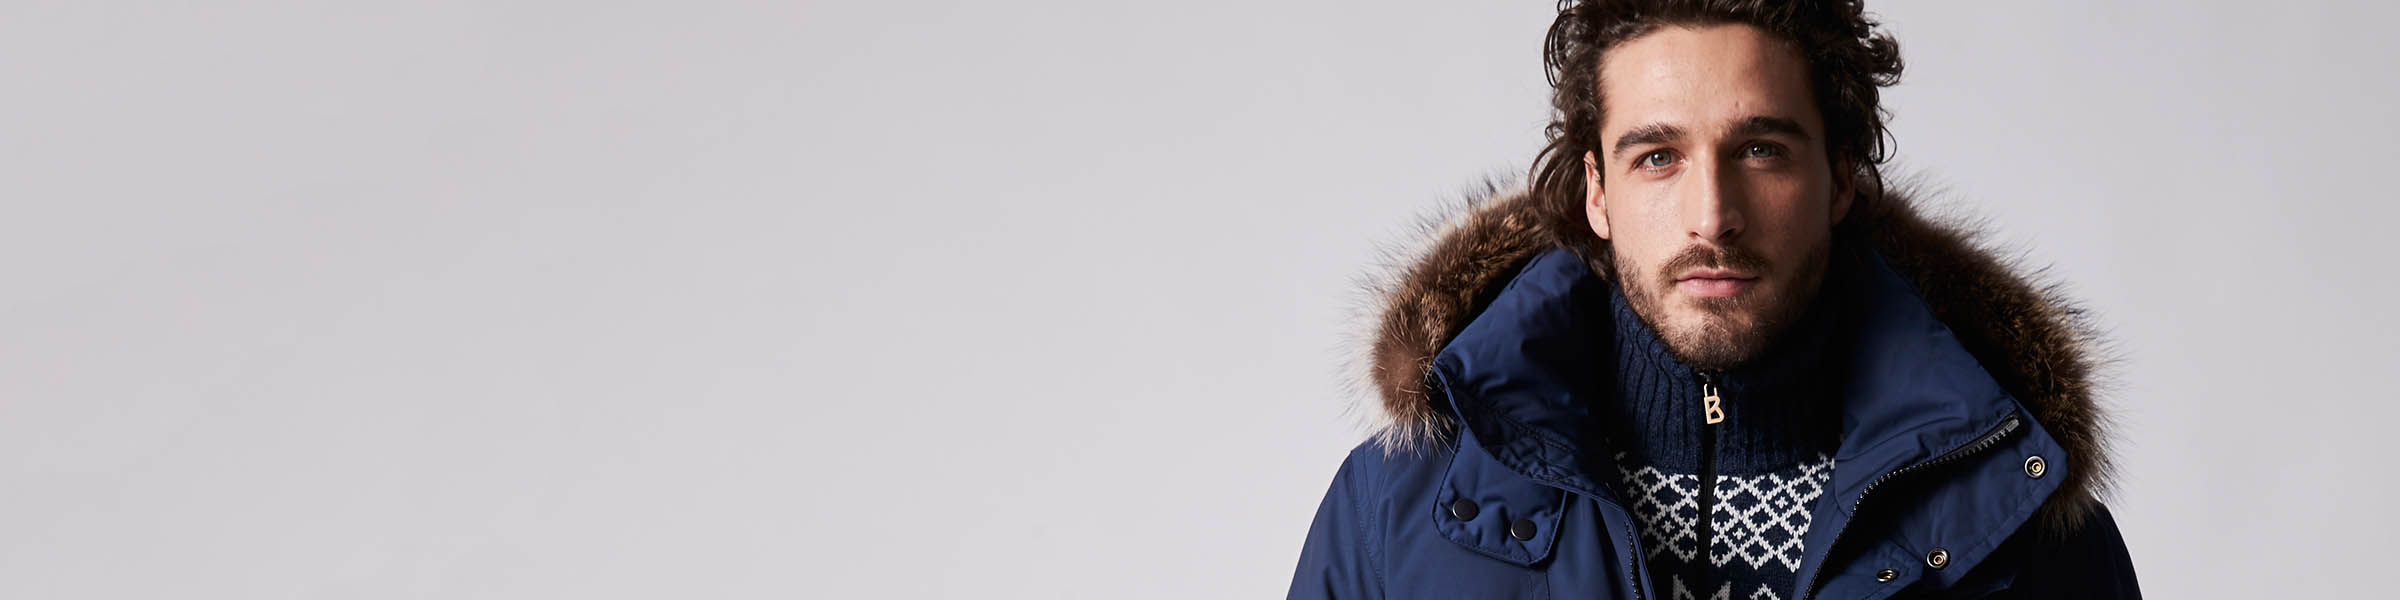 Bogner Fire + Ice: Men's Ski Accessories